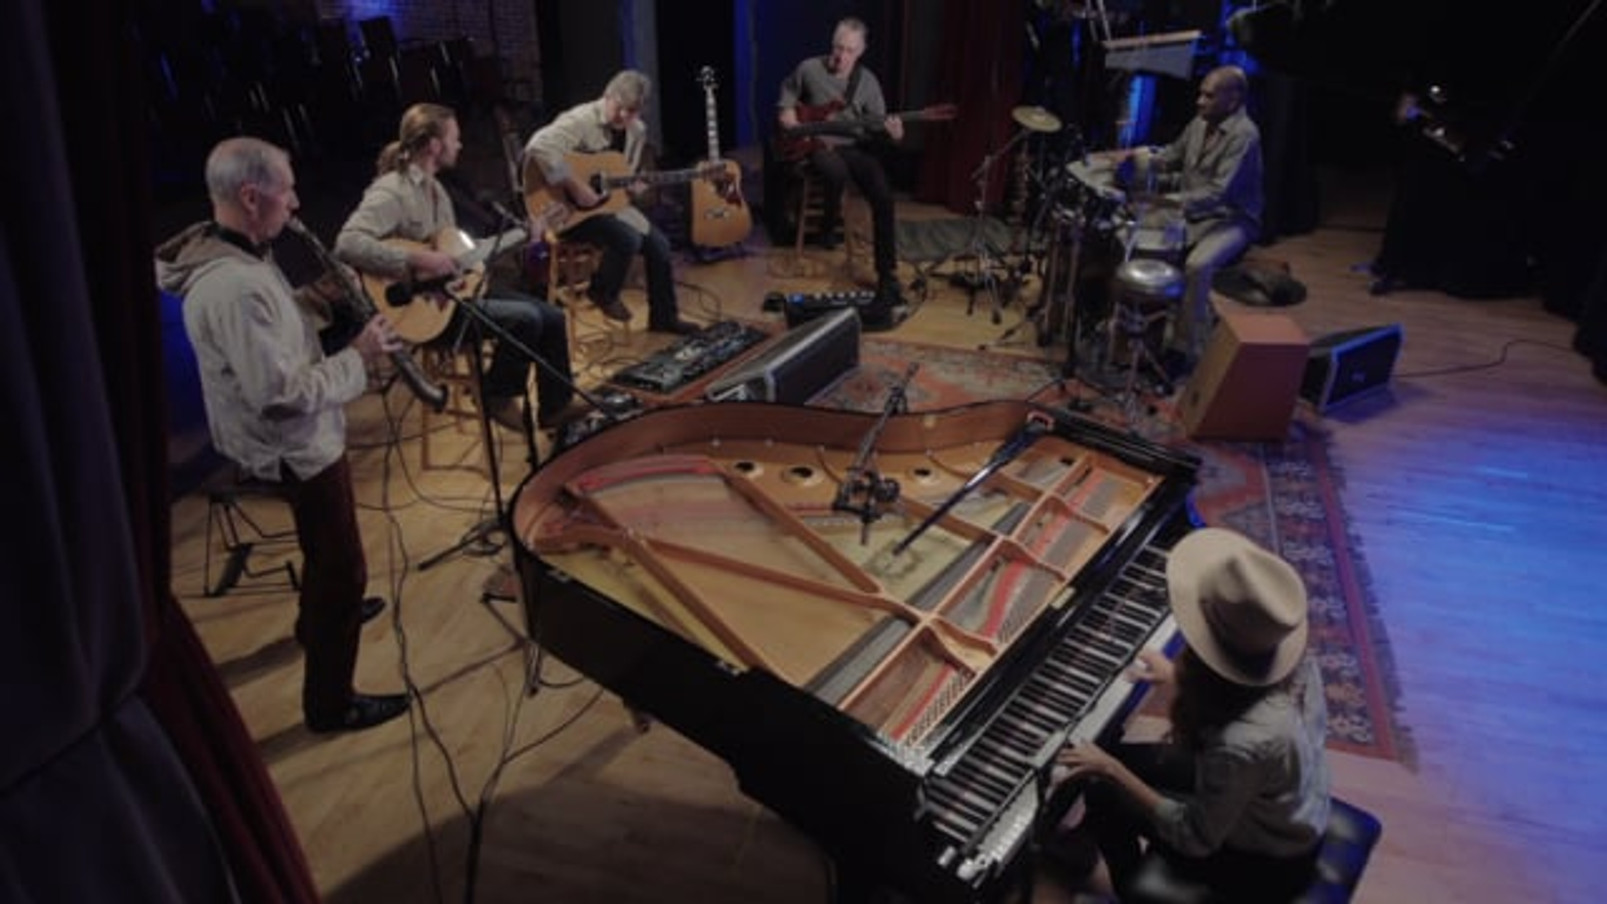 Todd Mosby and the New Horizon Ensemble   Western Sky